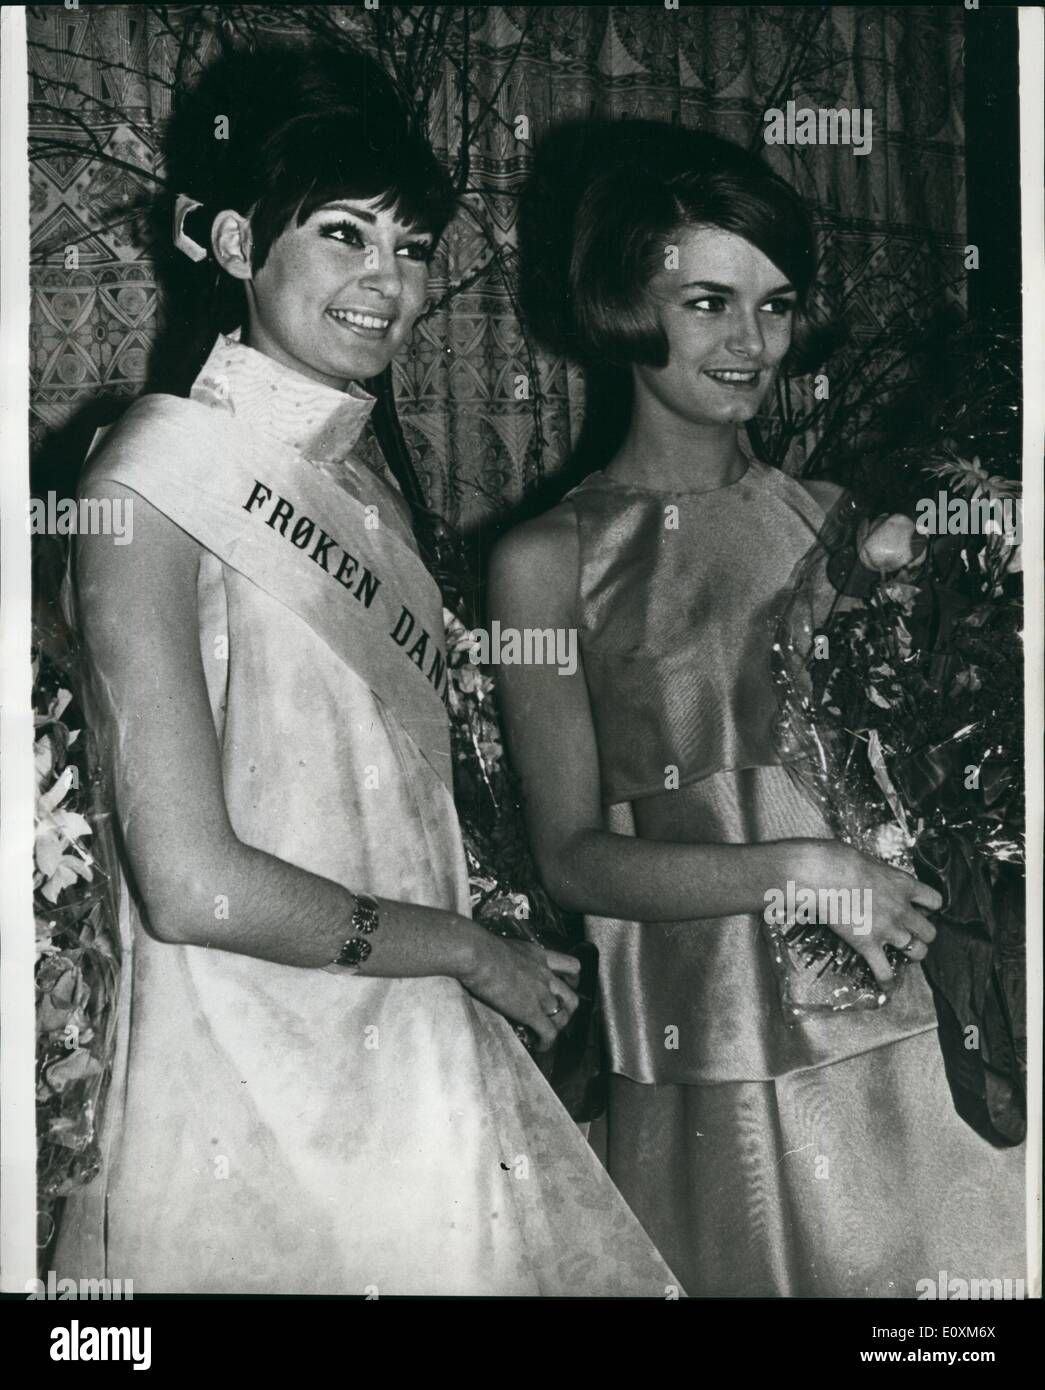 Apr. 04, 1967 - Miss Denmark 1967: 20-year old mannaquin, Gitte Rhein-Knudsen was last week elected as Miss Denmark from among hundreds of candidates. Gitte, has just finished her education at the mannequin school in Copehagen and is working as a freelance mannequin and photographic model. She goes to Nice next month where fom 25 May to 3 june, she will one of the contestants for the miss Nuro e title, and later on she will participate in the Miss Universe contest and the Miss Scandinavia contest - Stock Image